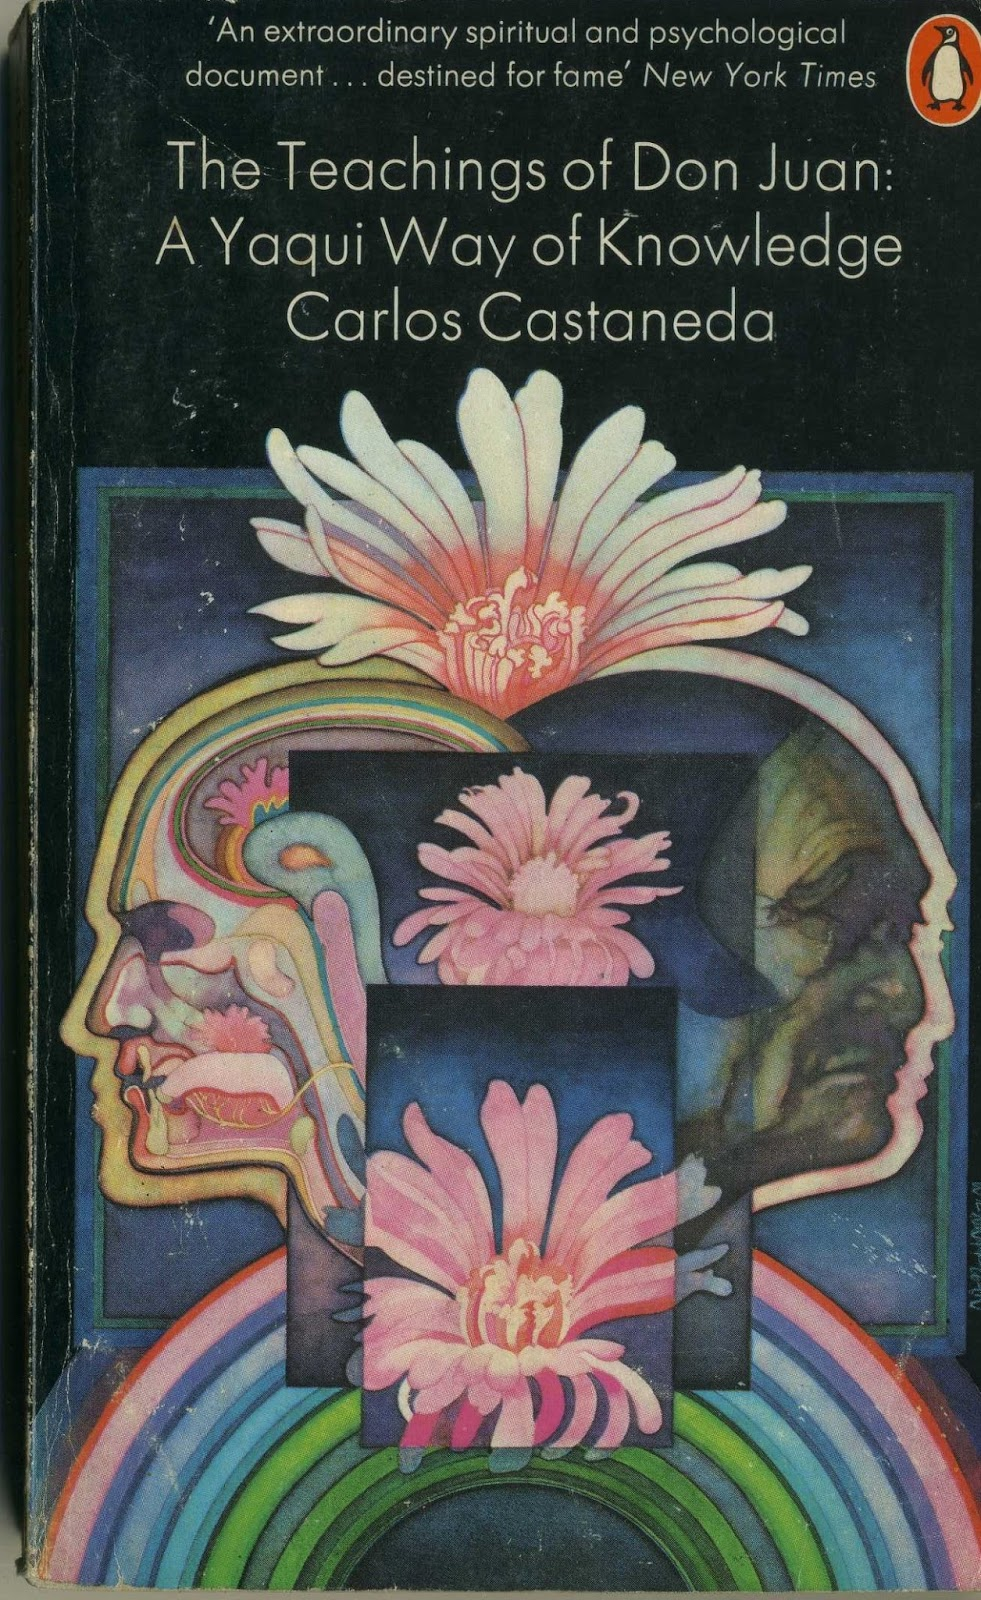 The Generalist: CARLOS CASTANEDA AND DON JUAN: TRUTH OR FICTION